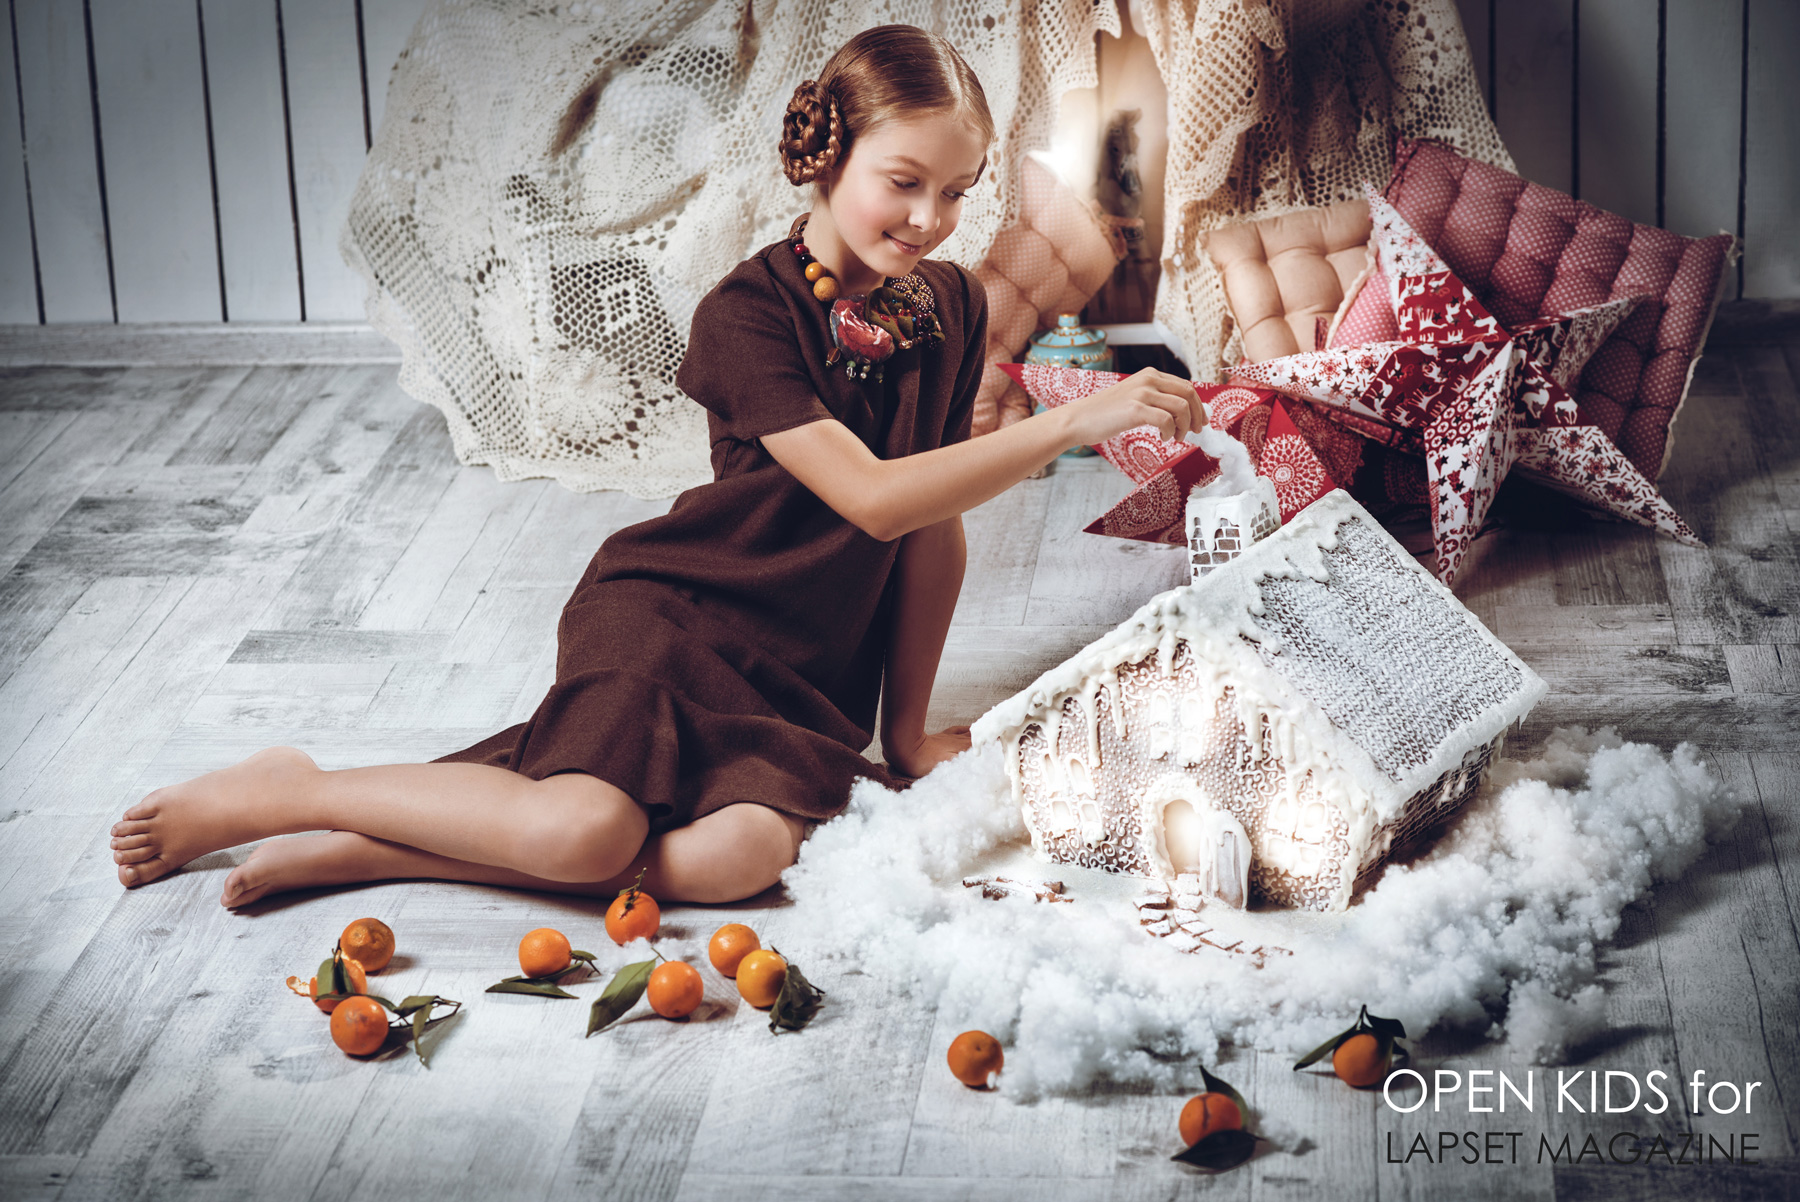 open-kids-lapset-magazine-christmas-03